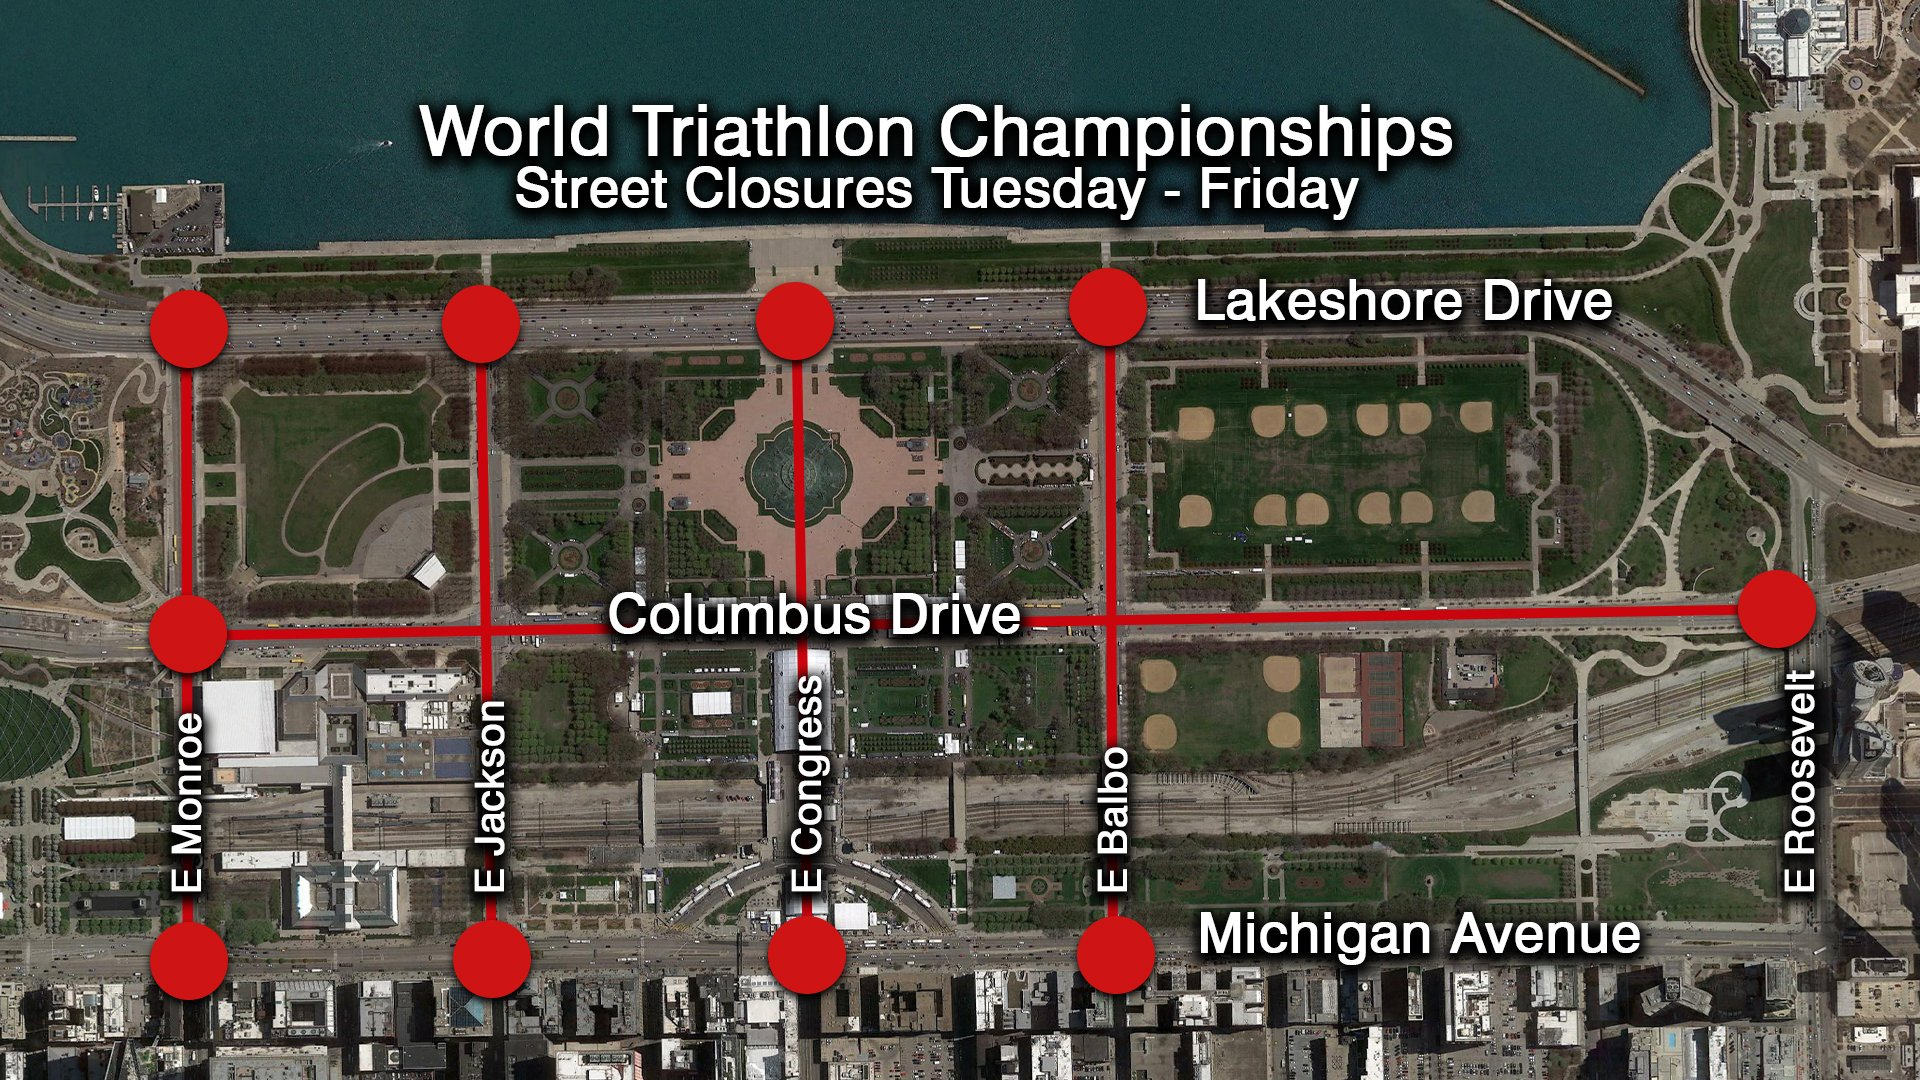 Chicago Plays Host to Elite Triathletes at World Final ...